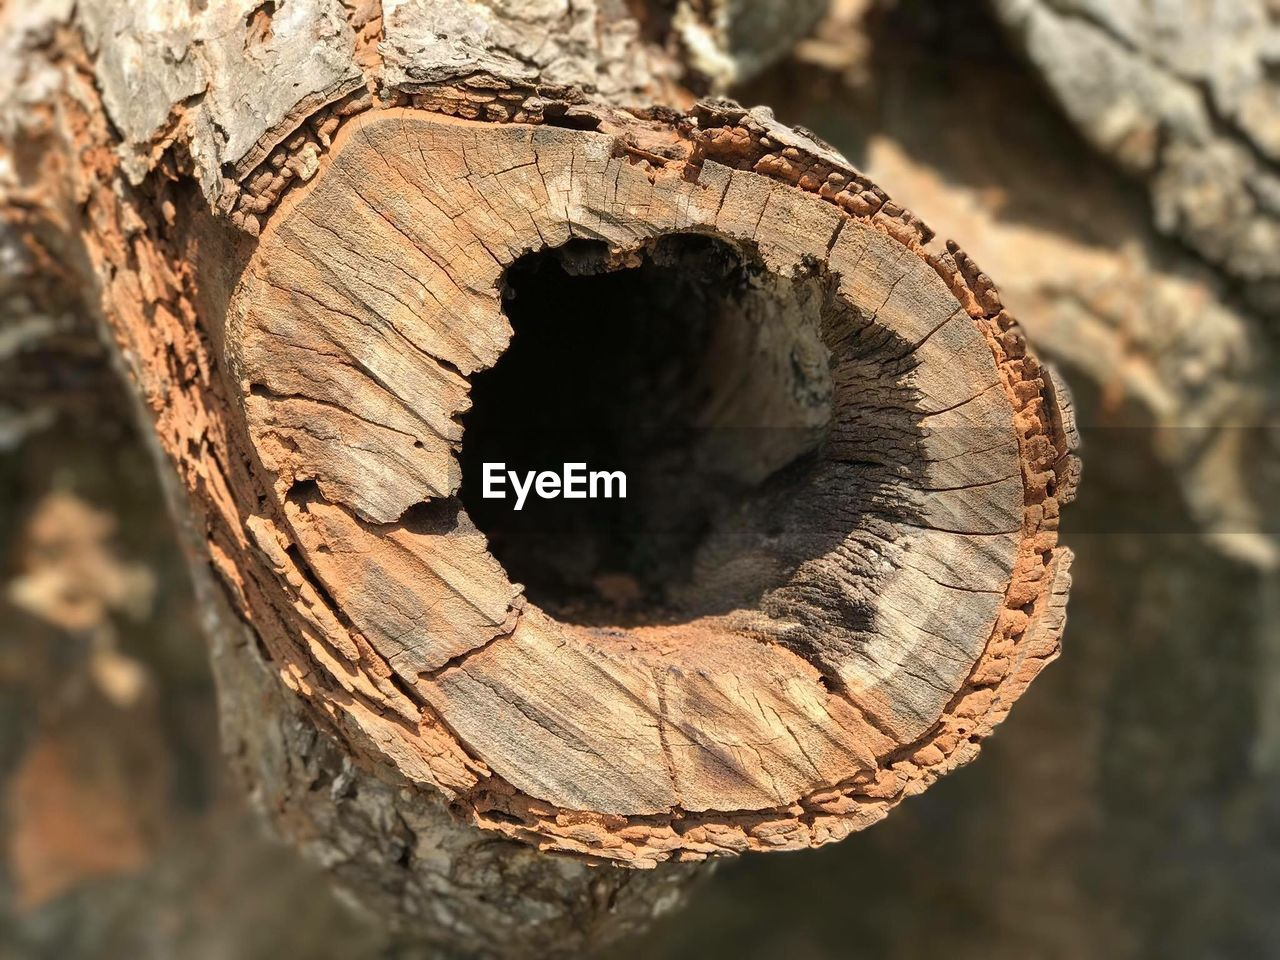 tree, close-up, wood - material, textured, day, wood, bark, nature, log, no people, tree stump, timber, focus on foreground, forest, outdoors, tree trunk, brown, rough, deforestation, circle, tree ring